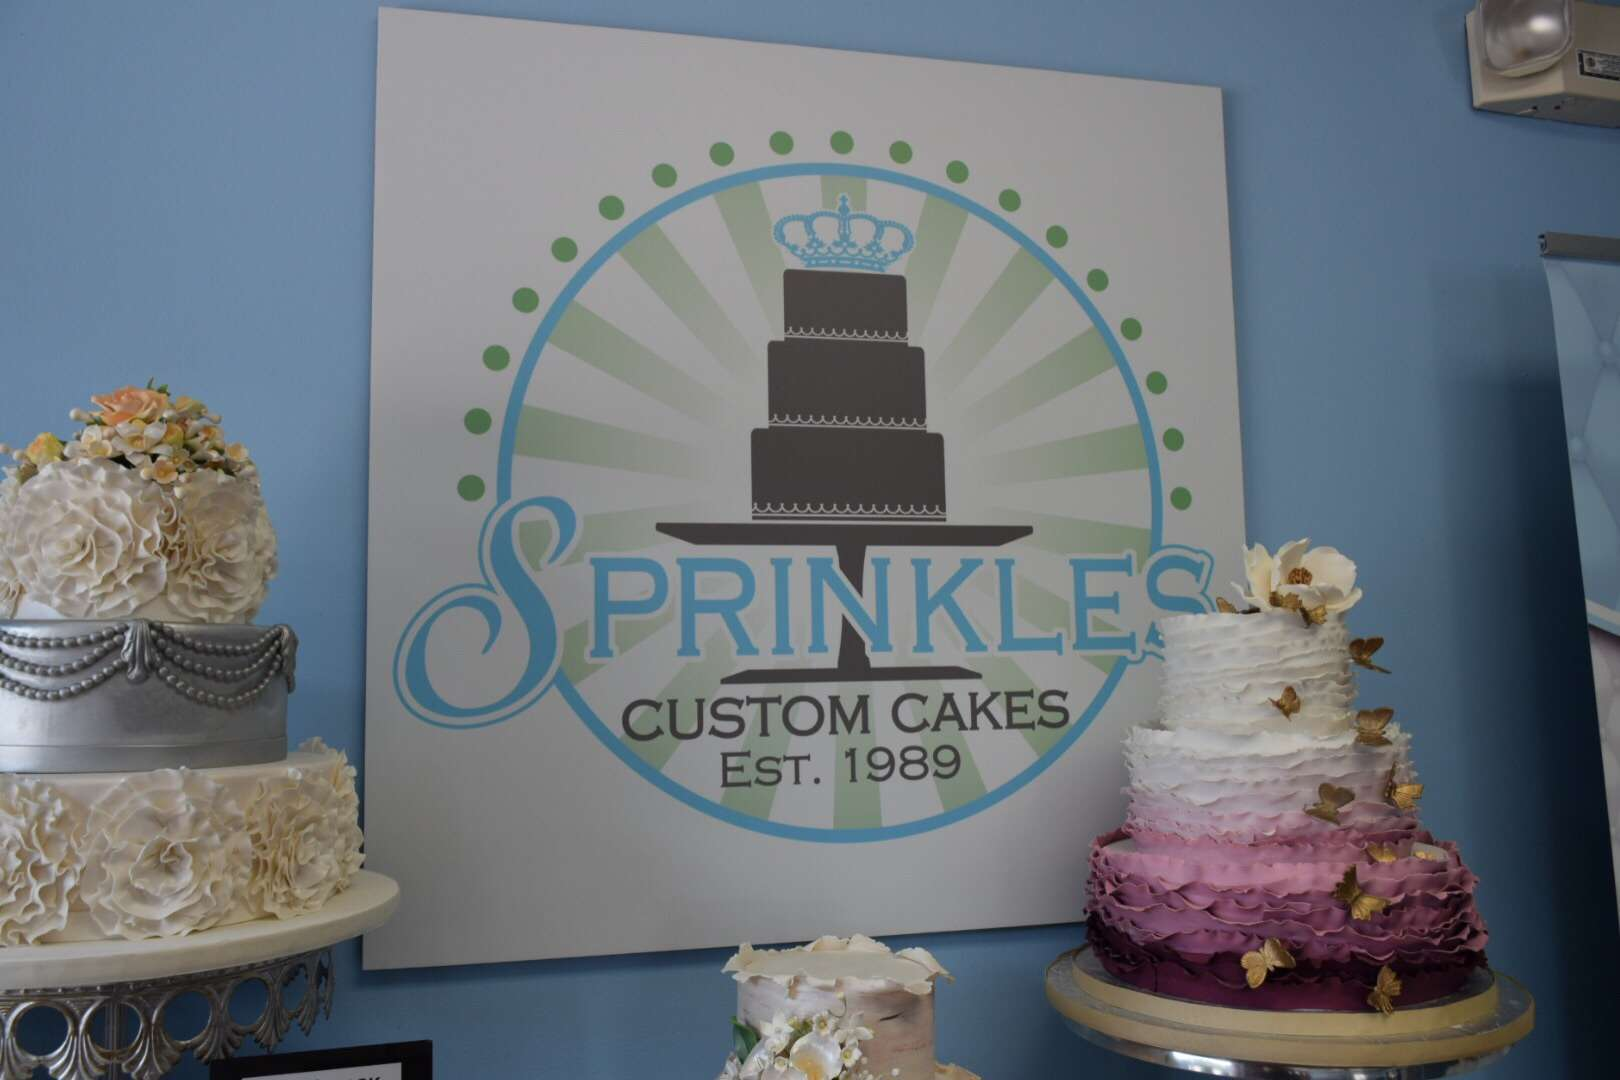 Sprinkles Custom Cakes Review | OFF On The Go